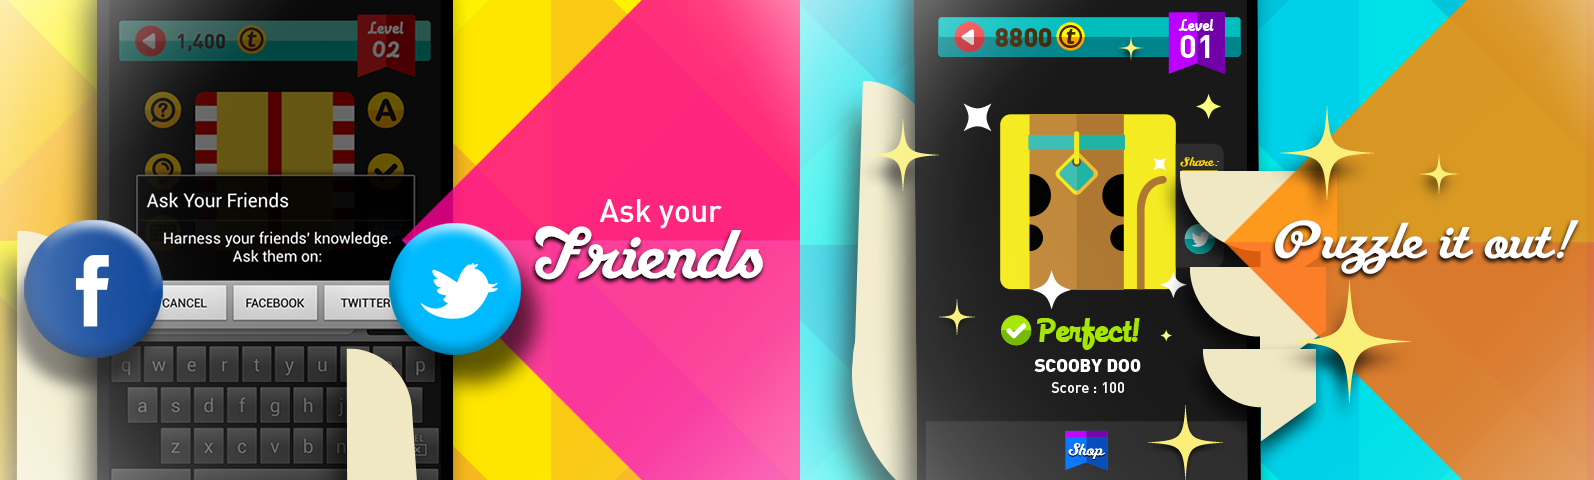 icon pop quiz android